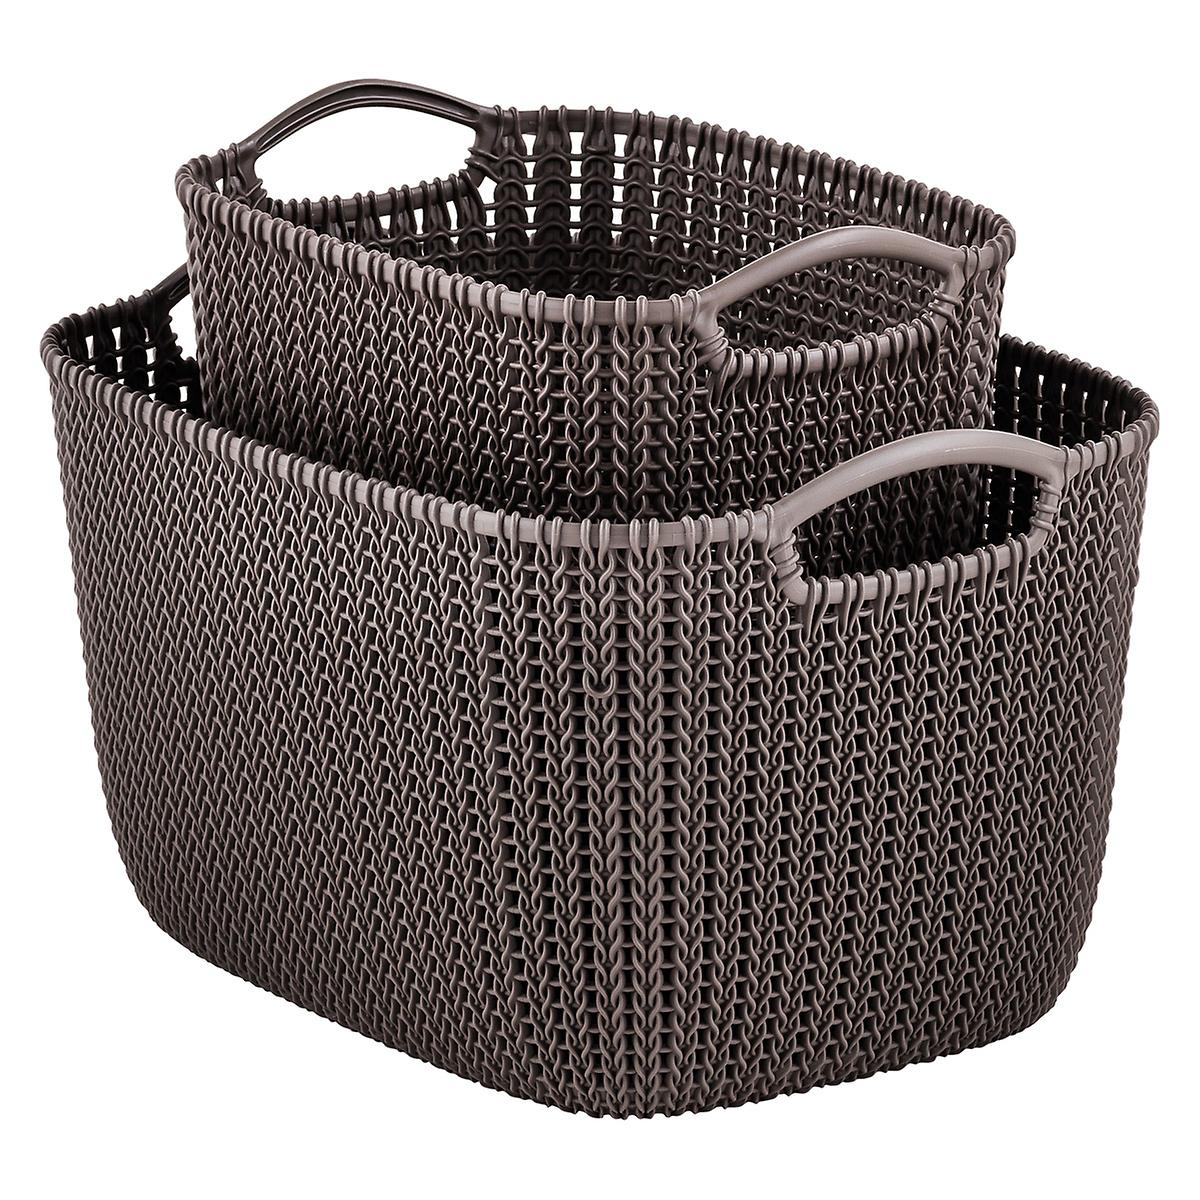 Curver Sand Knit Storage Baskets: Curver Harvest Brown Knit Baskets